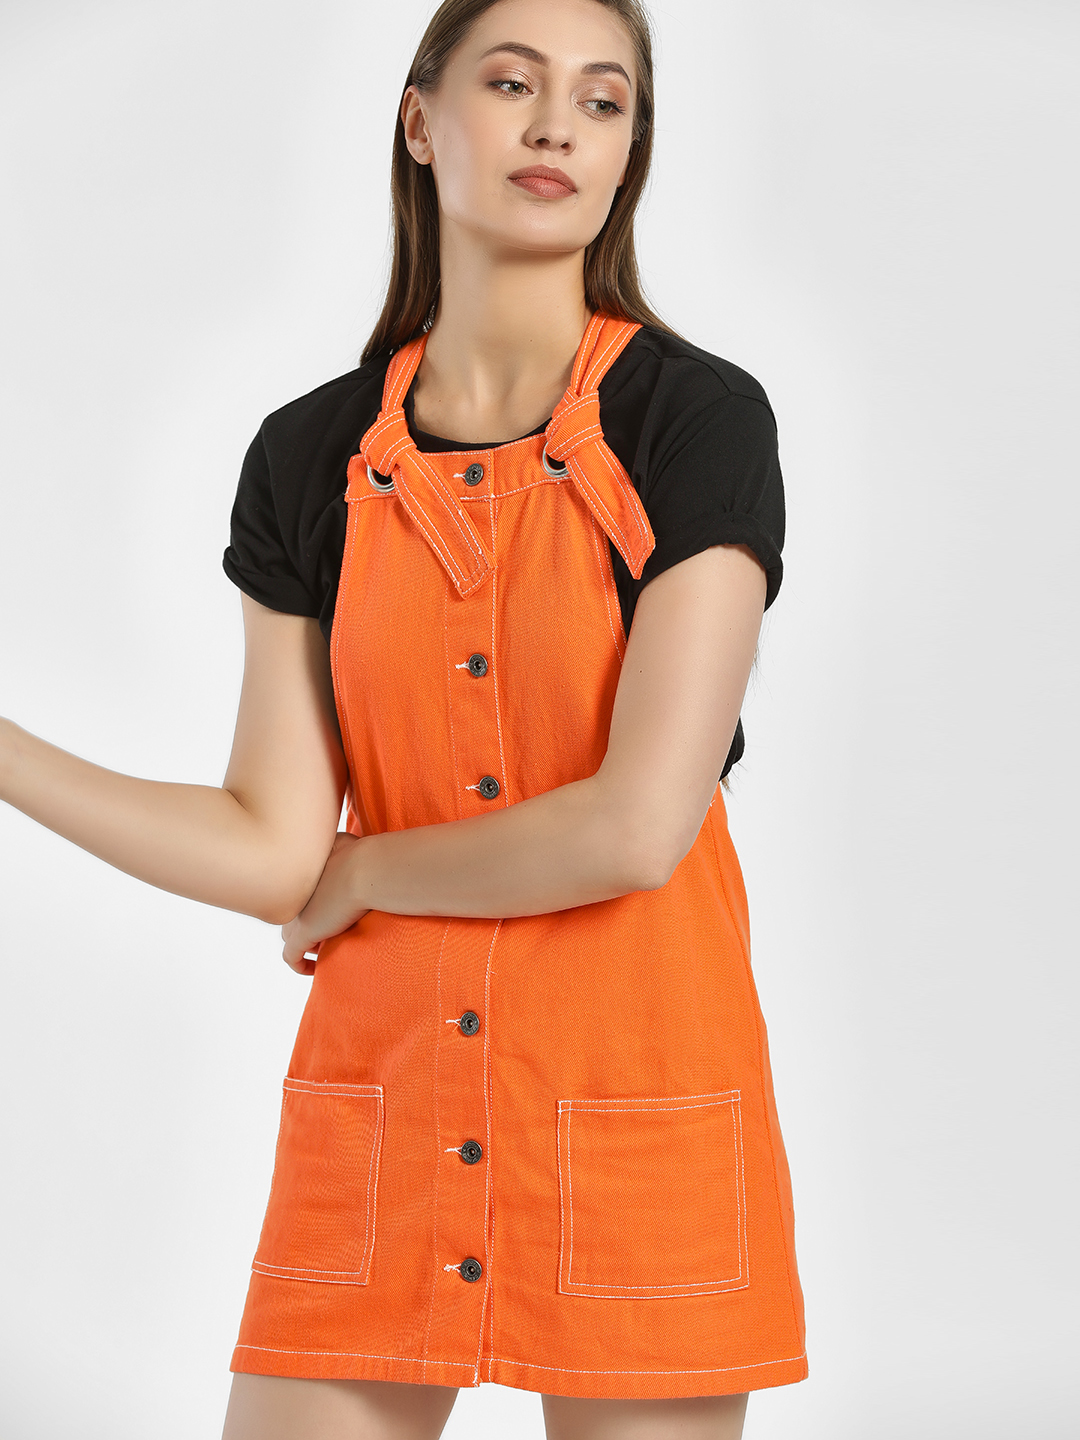 K Denim Orange KOOVS Front-Button Pinafore Dress 1